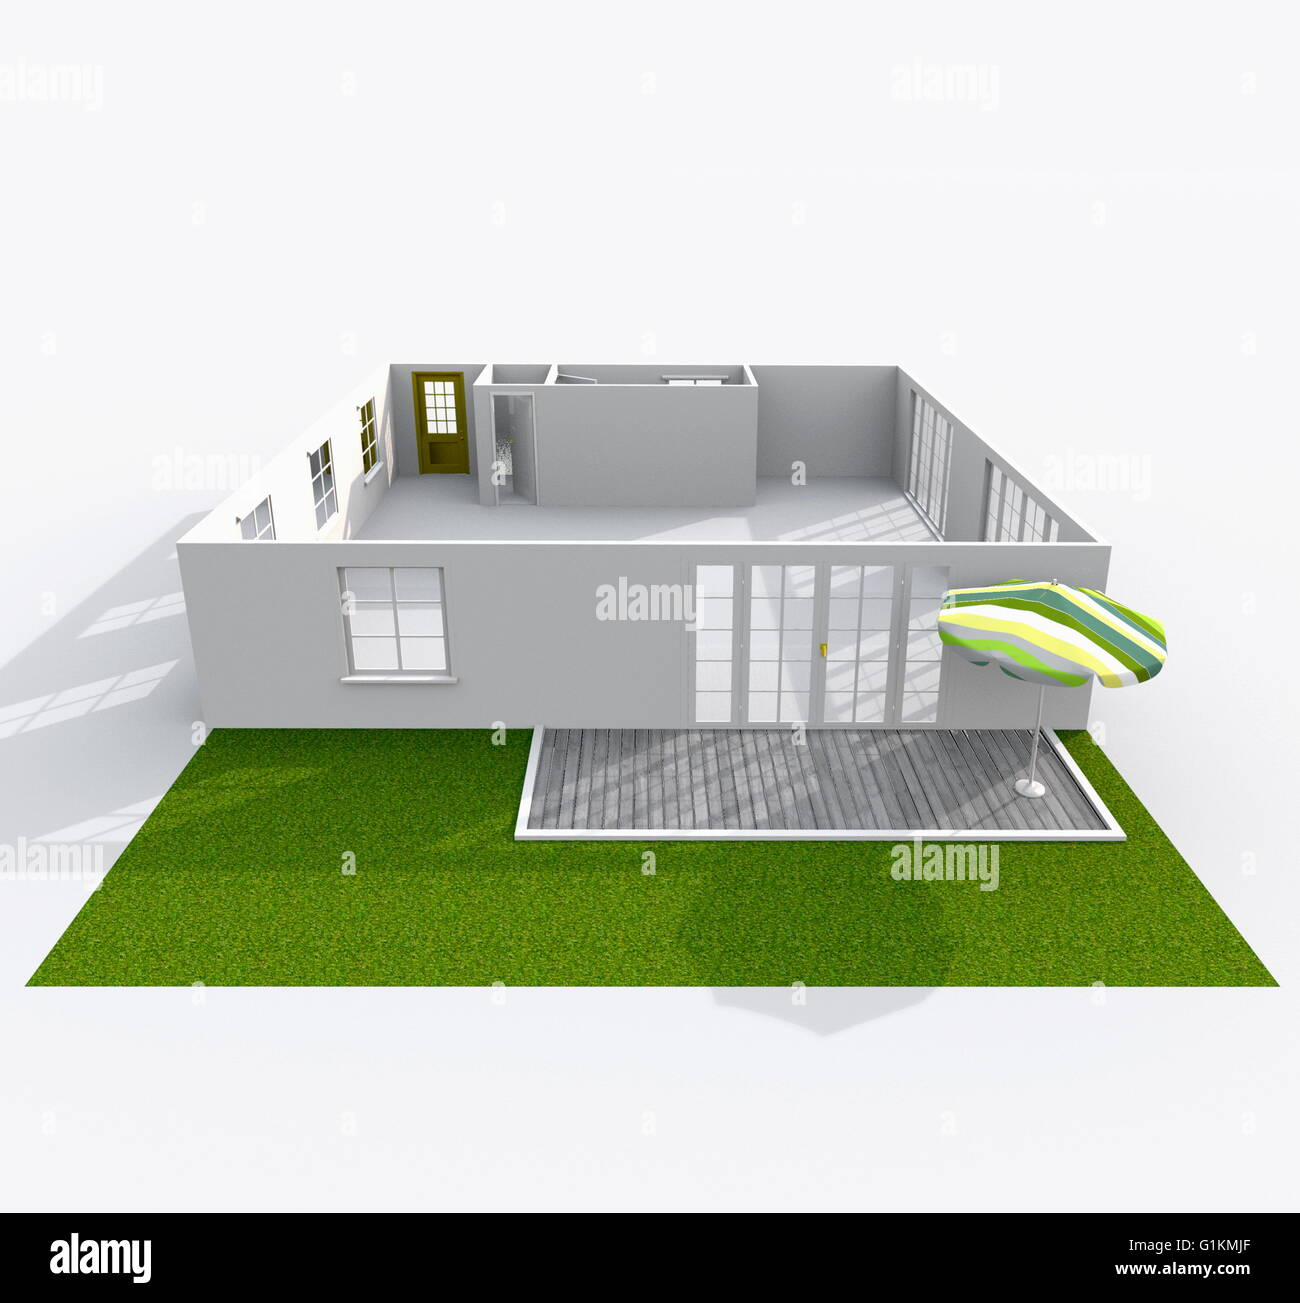 Empty Apartment Bathroom 3d interior rendering of empty paper model home apartment with